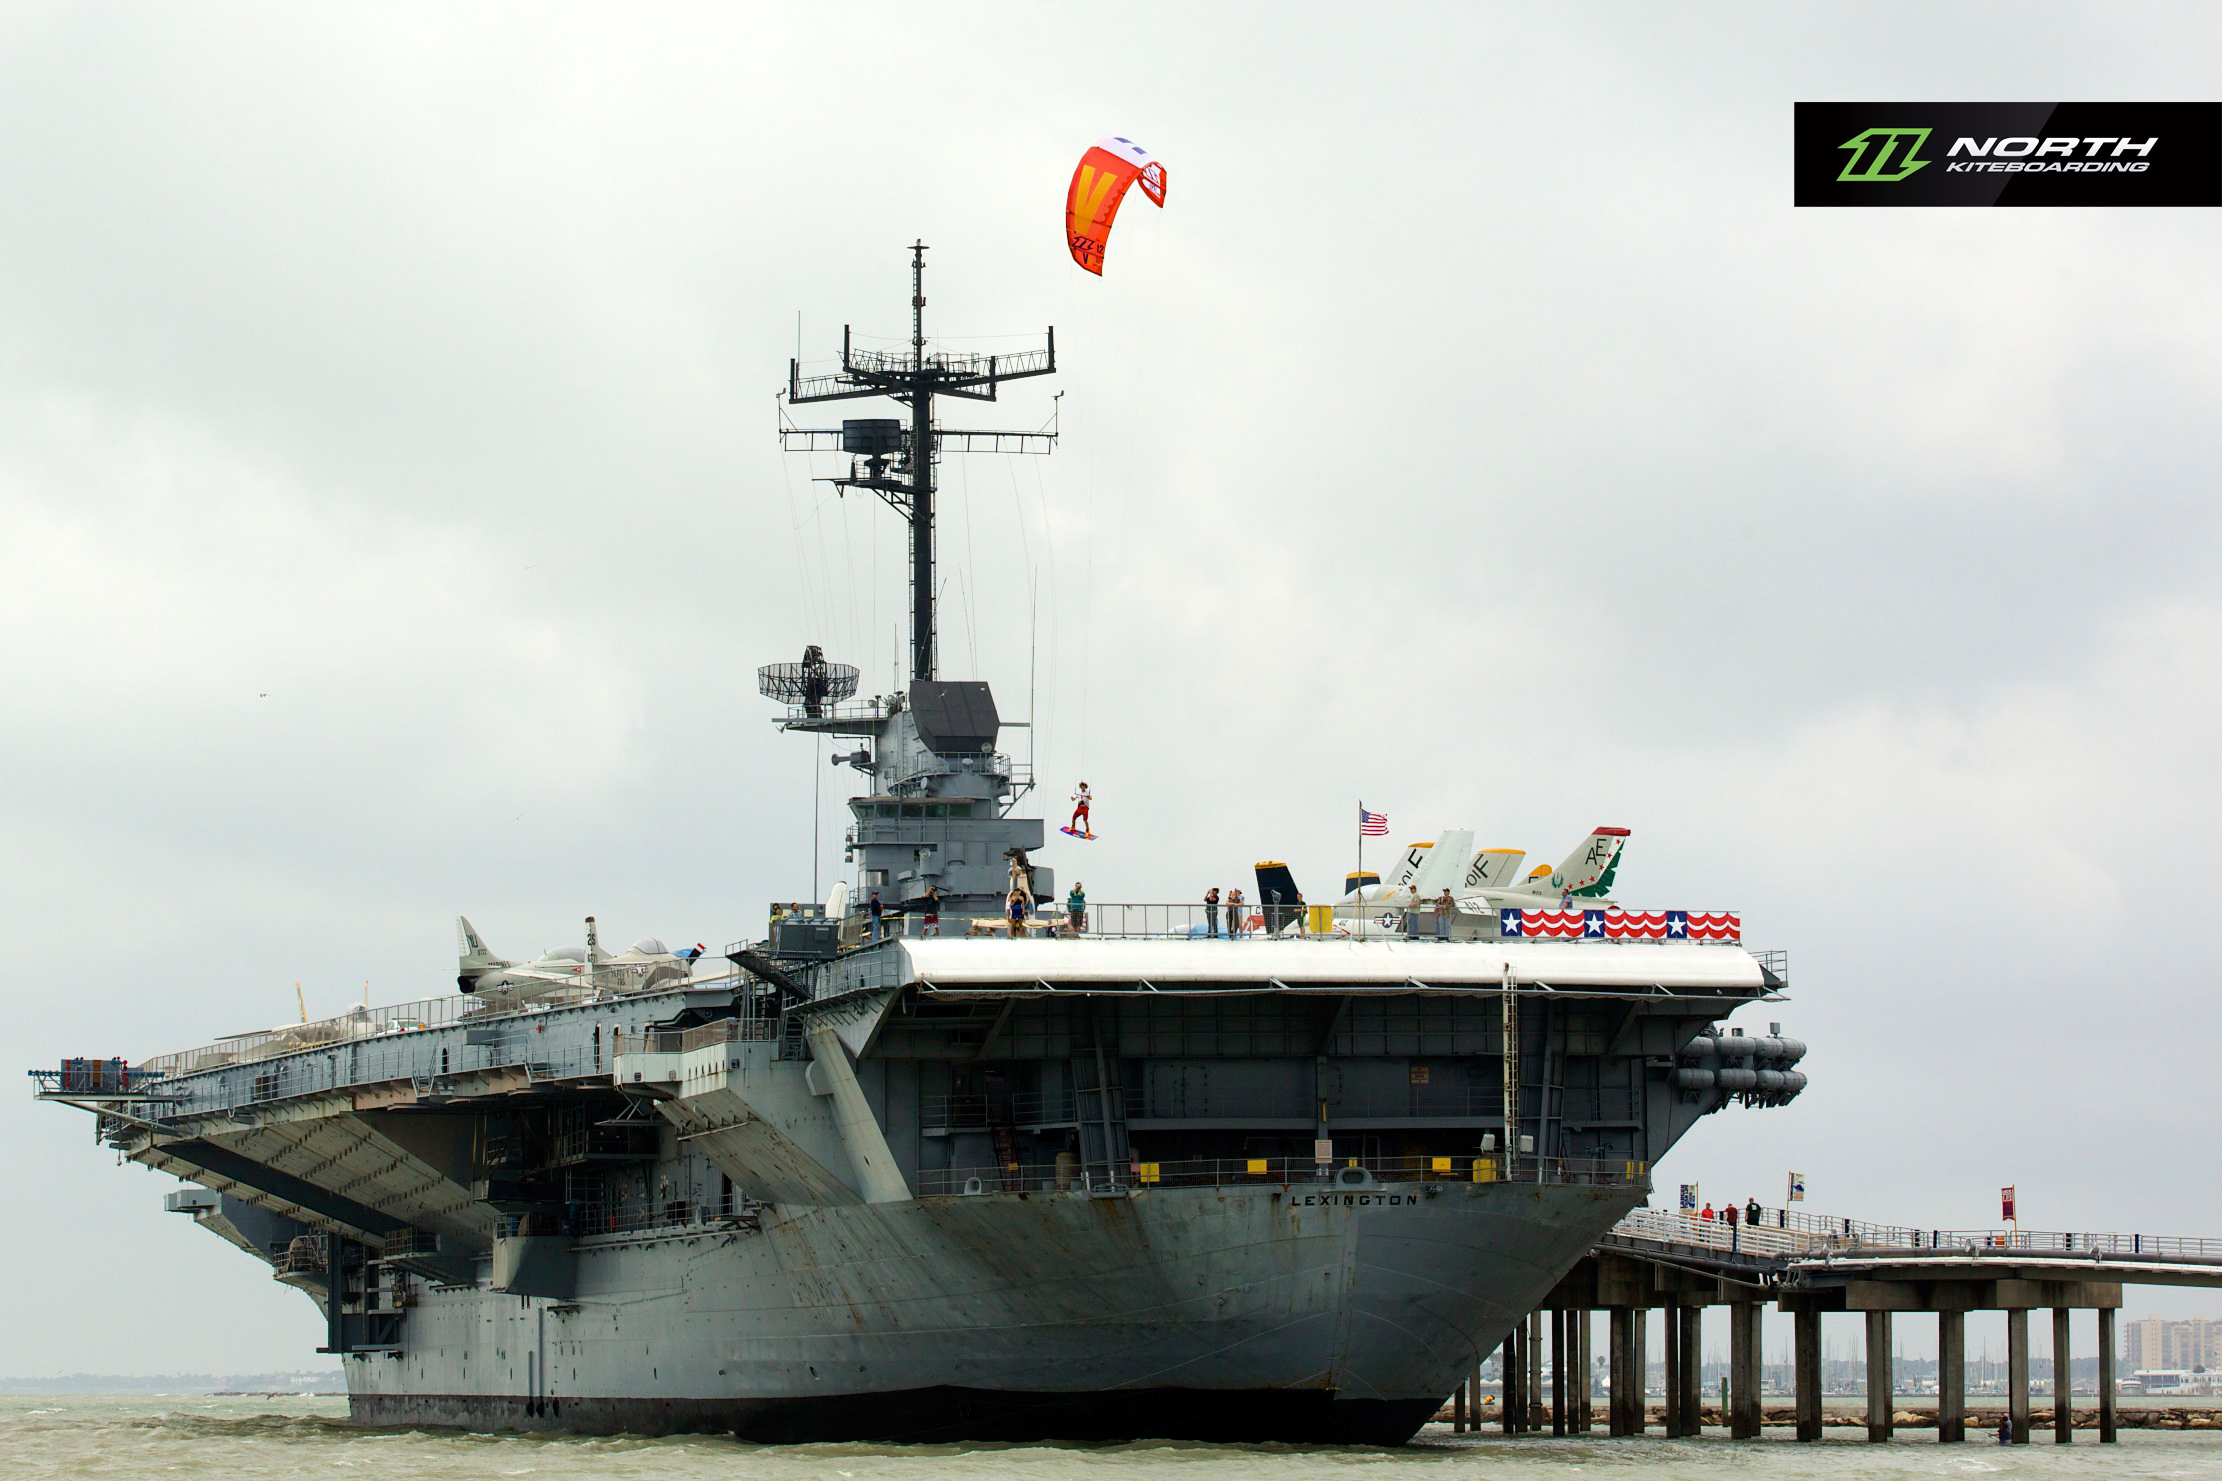 kitesurf wallpaper image - Jumping off an aircraft carrier with a North Vegas kite - in resolution: Original 2222 X 1481